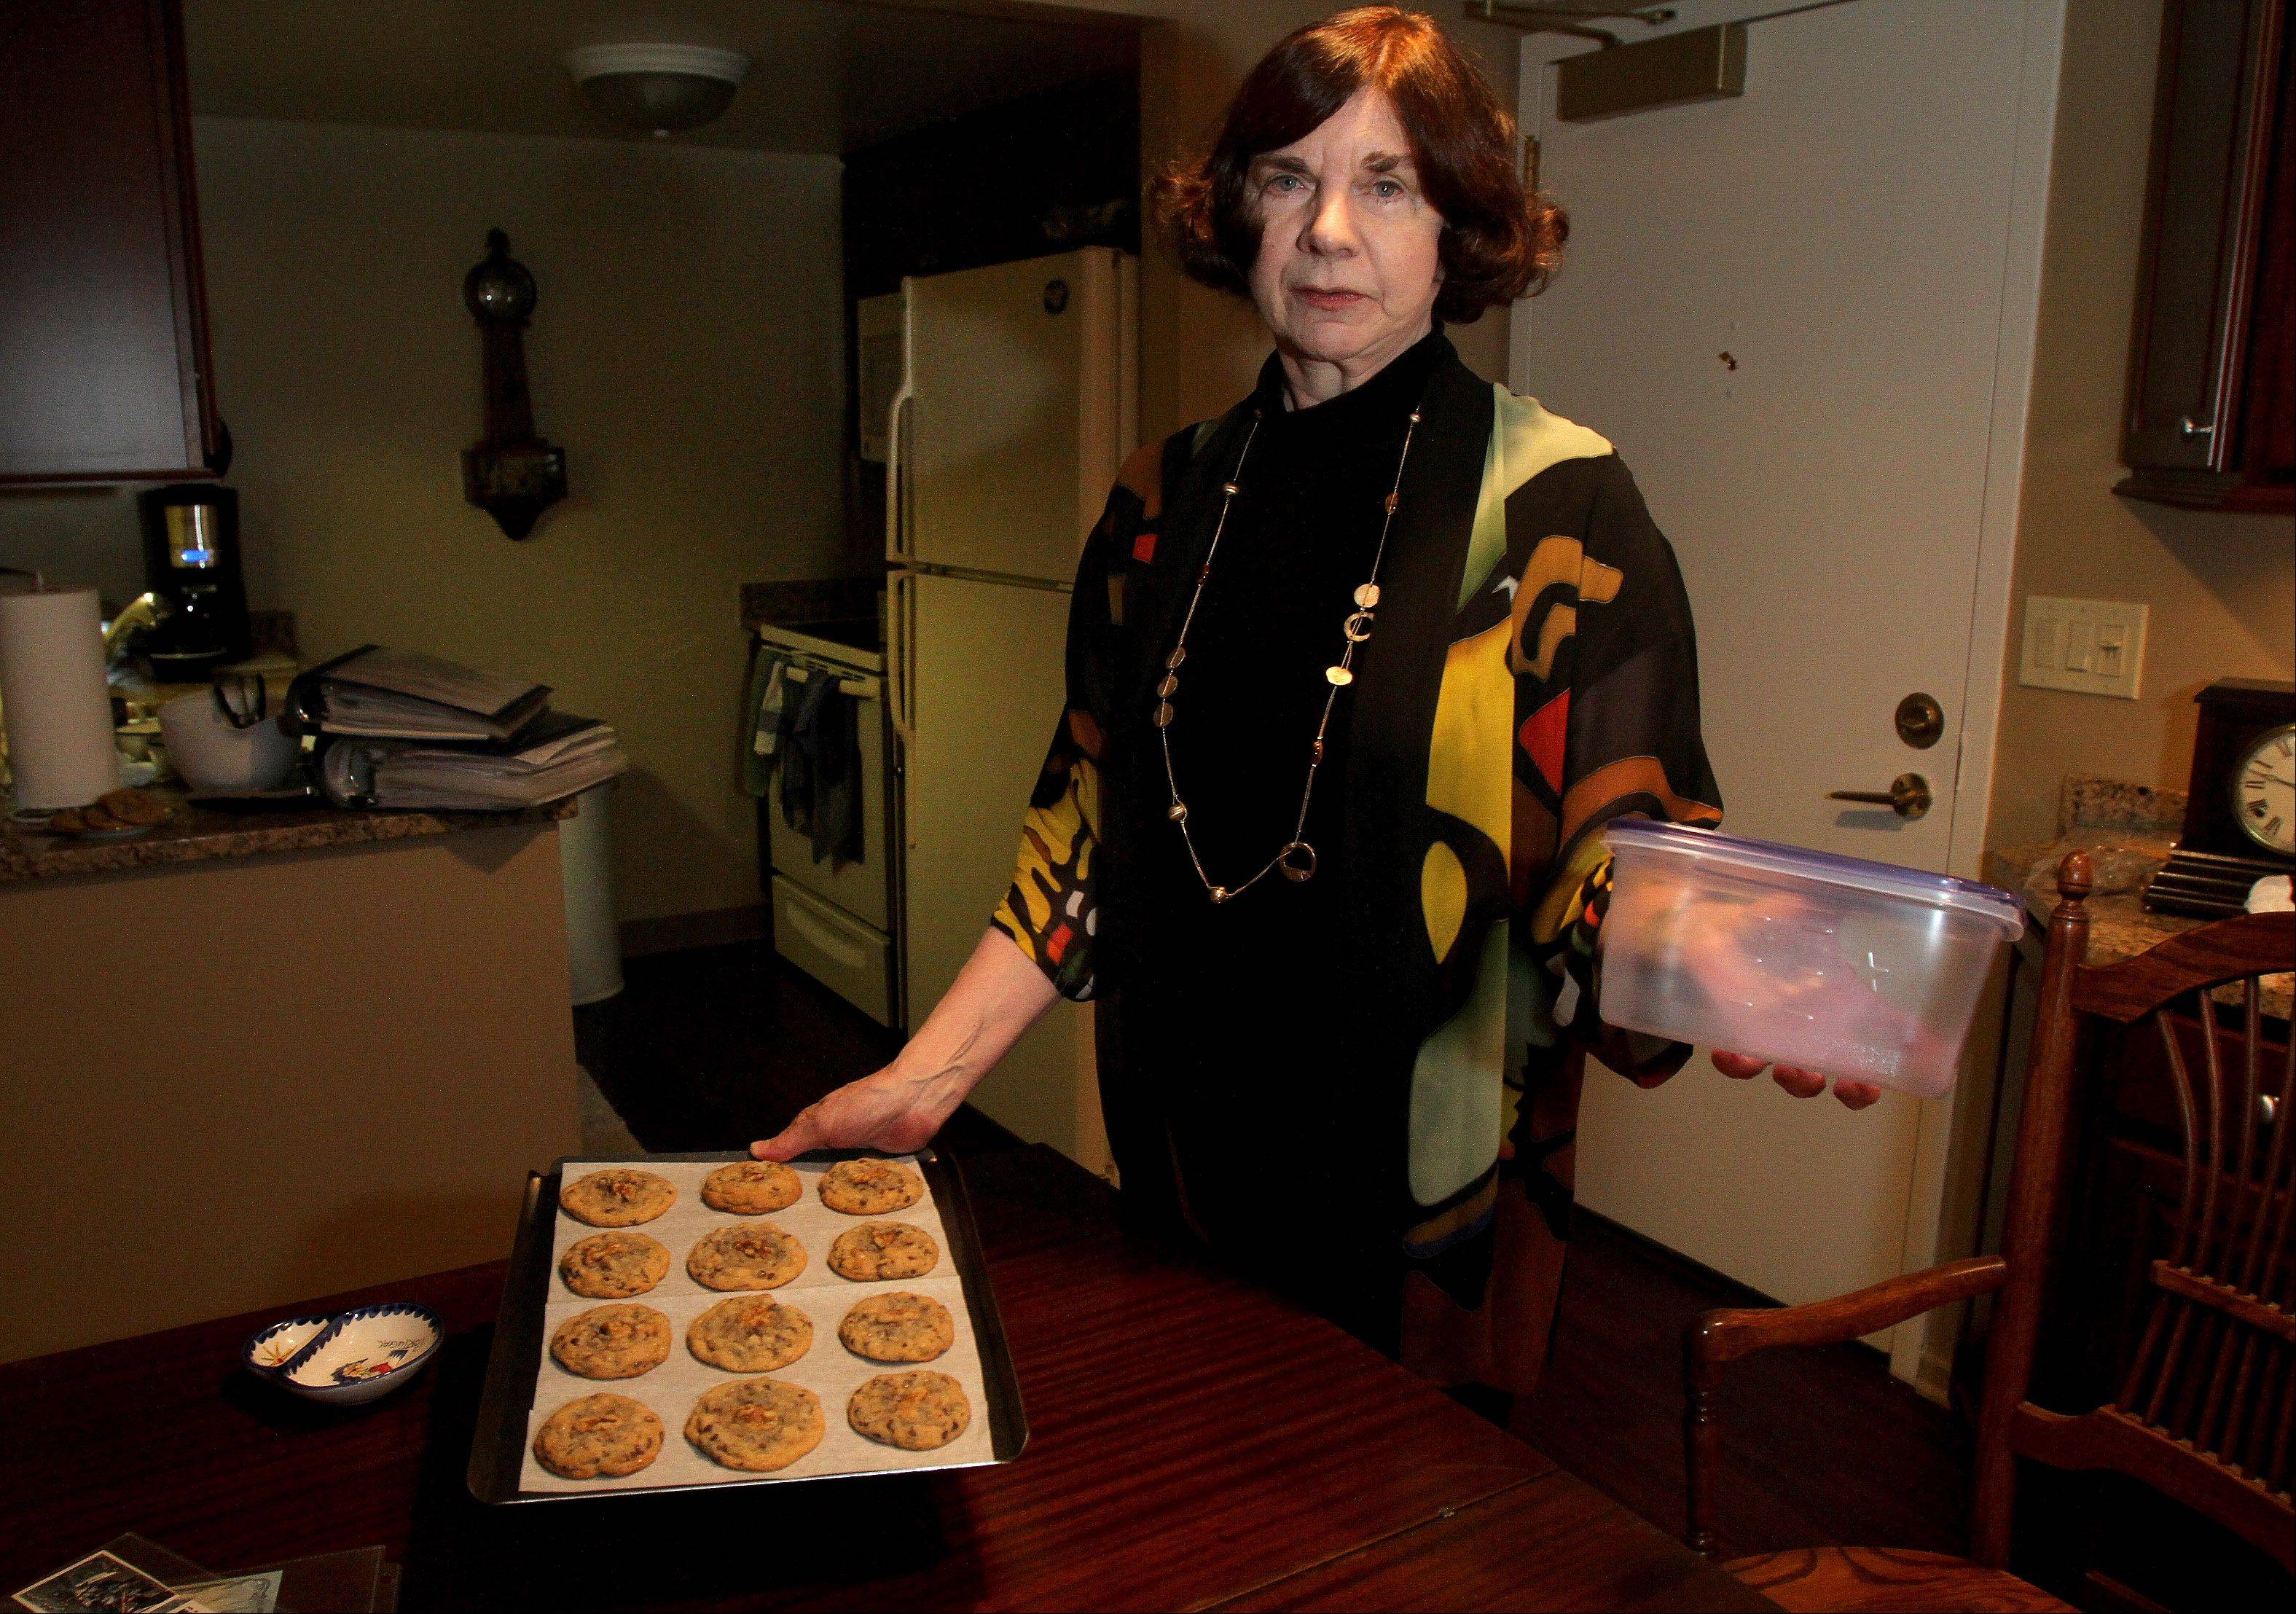 Candy Bishop of Lombard volunteers for the nonprofit Soldiers' Angels, baking cookies and writing letters to more than 4,000 soldiers, airmen, Marines and sailors in four years.